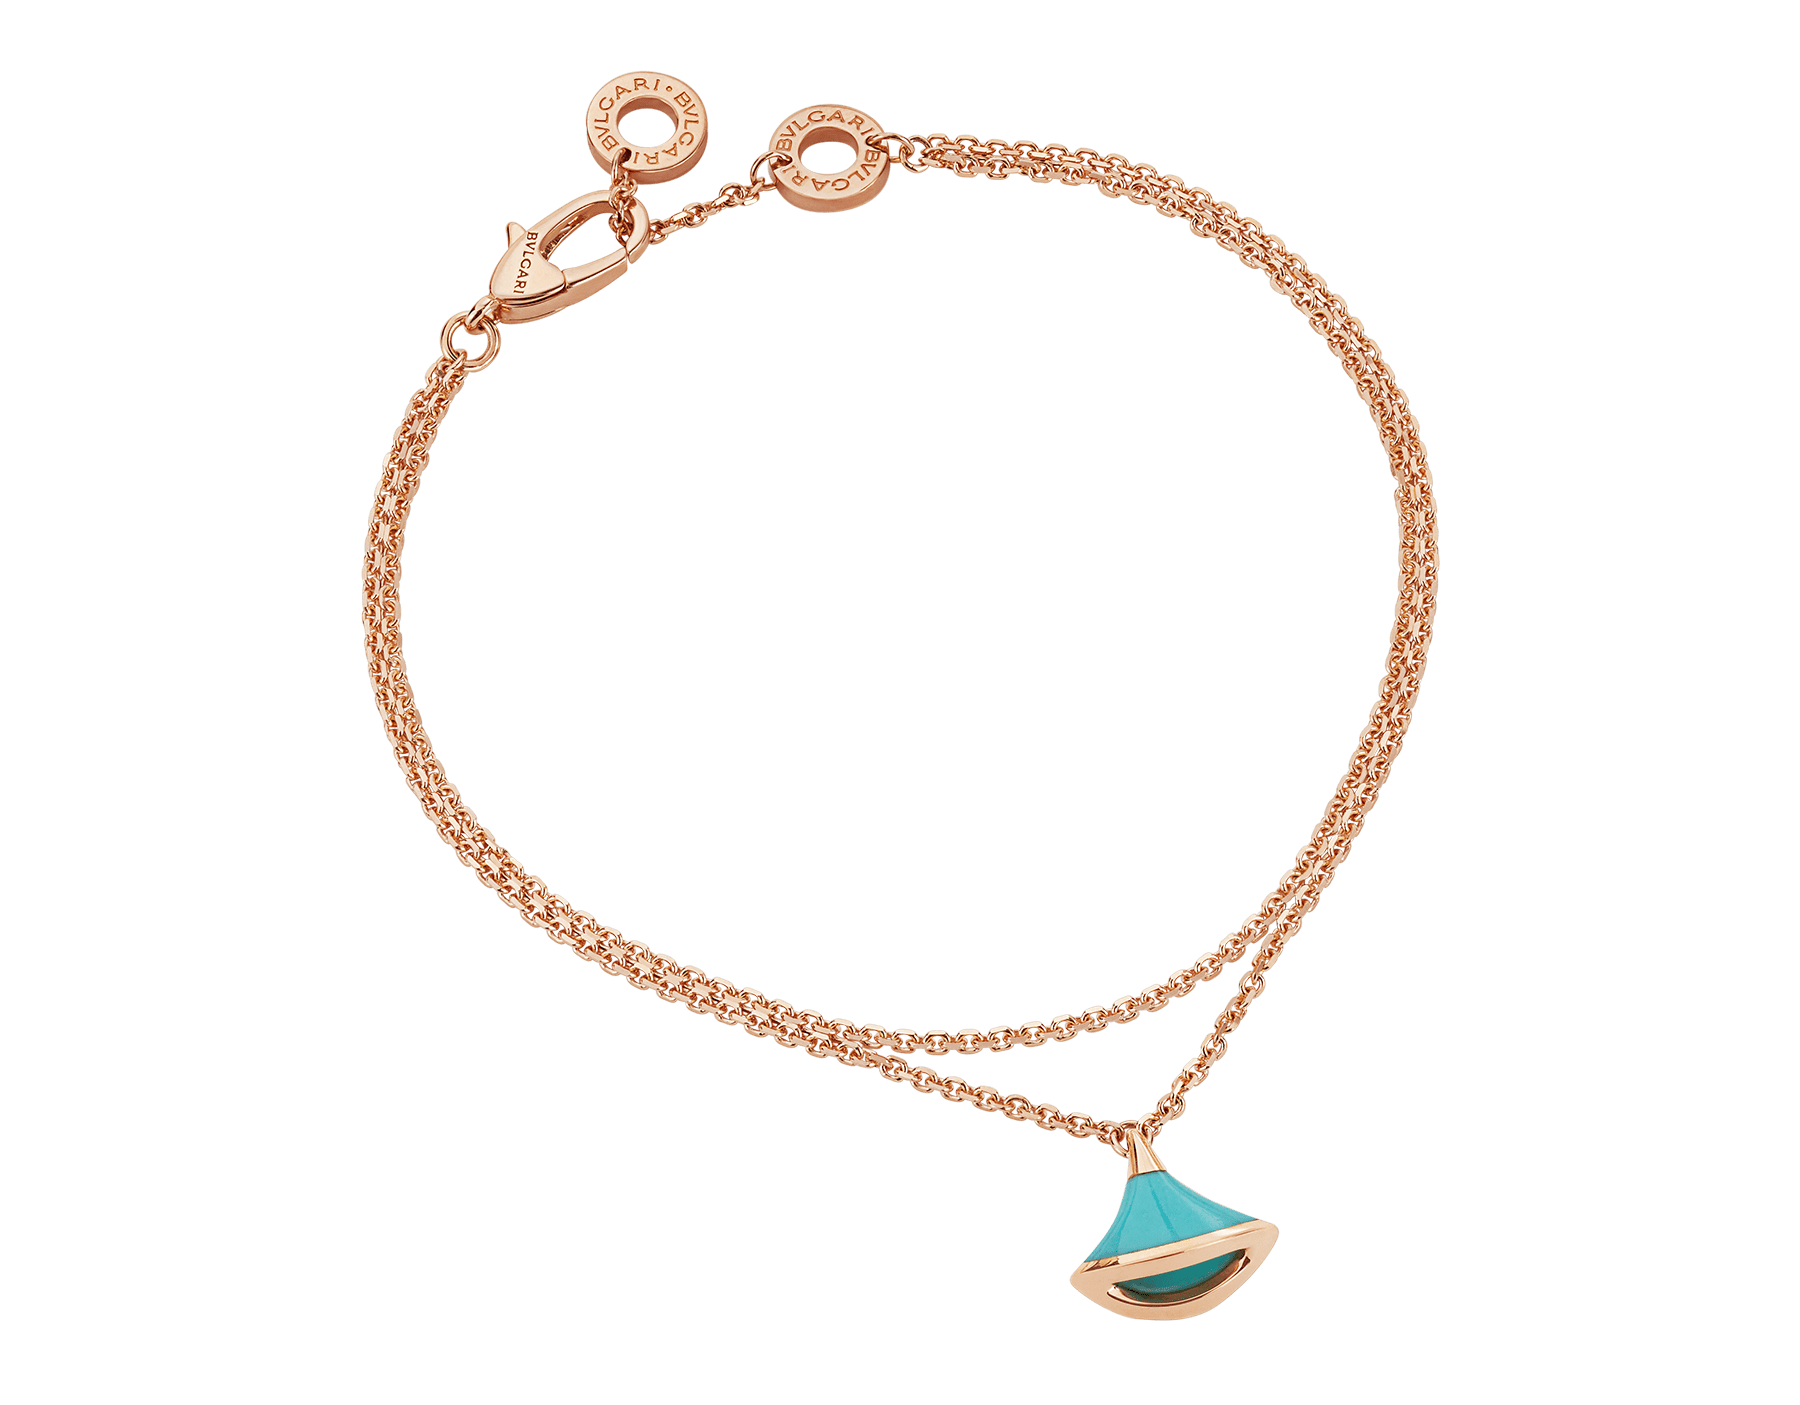 DIVAS' DREAM bracelet in 18 kt rose gold with pendant set with torquoise. BR857195 image 1